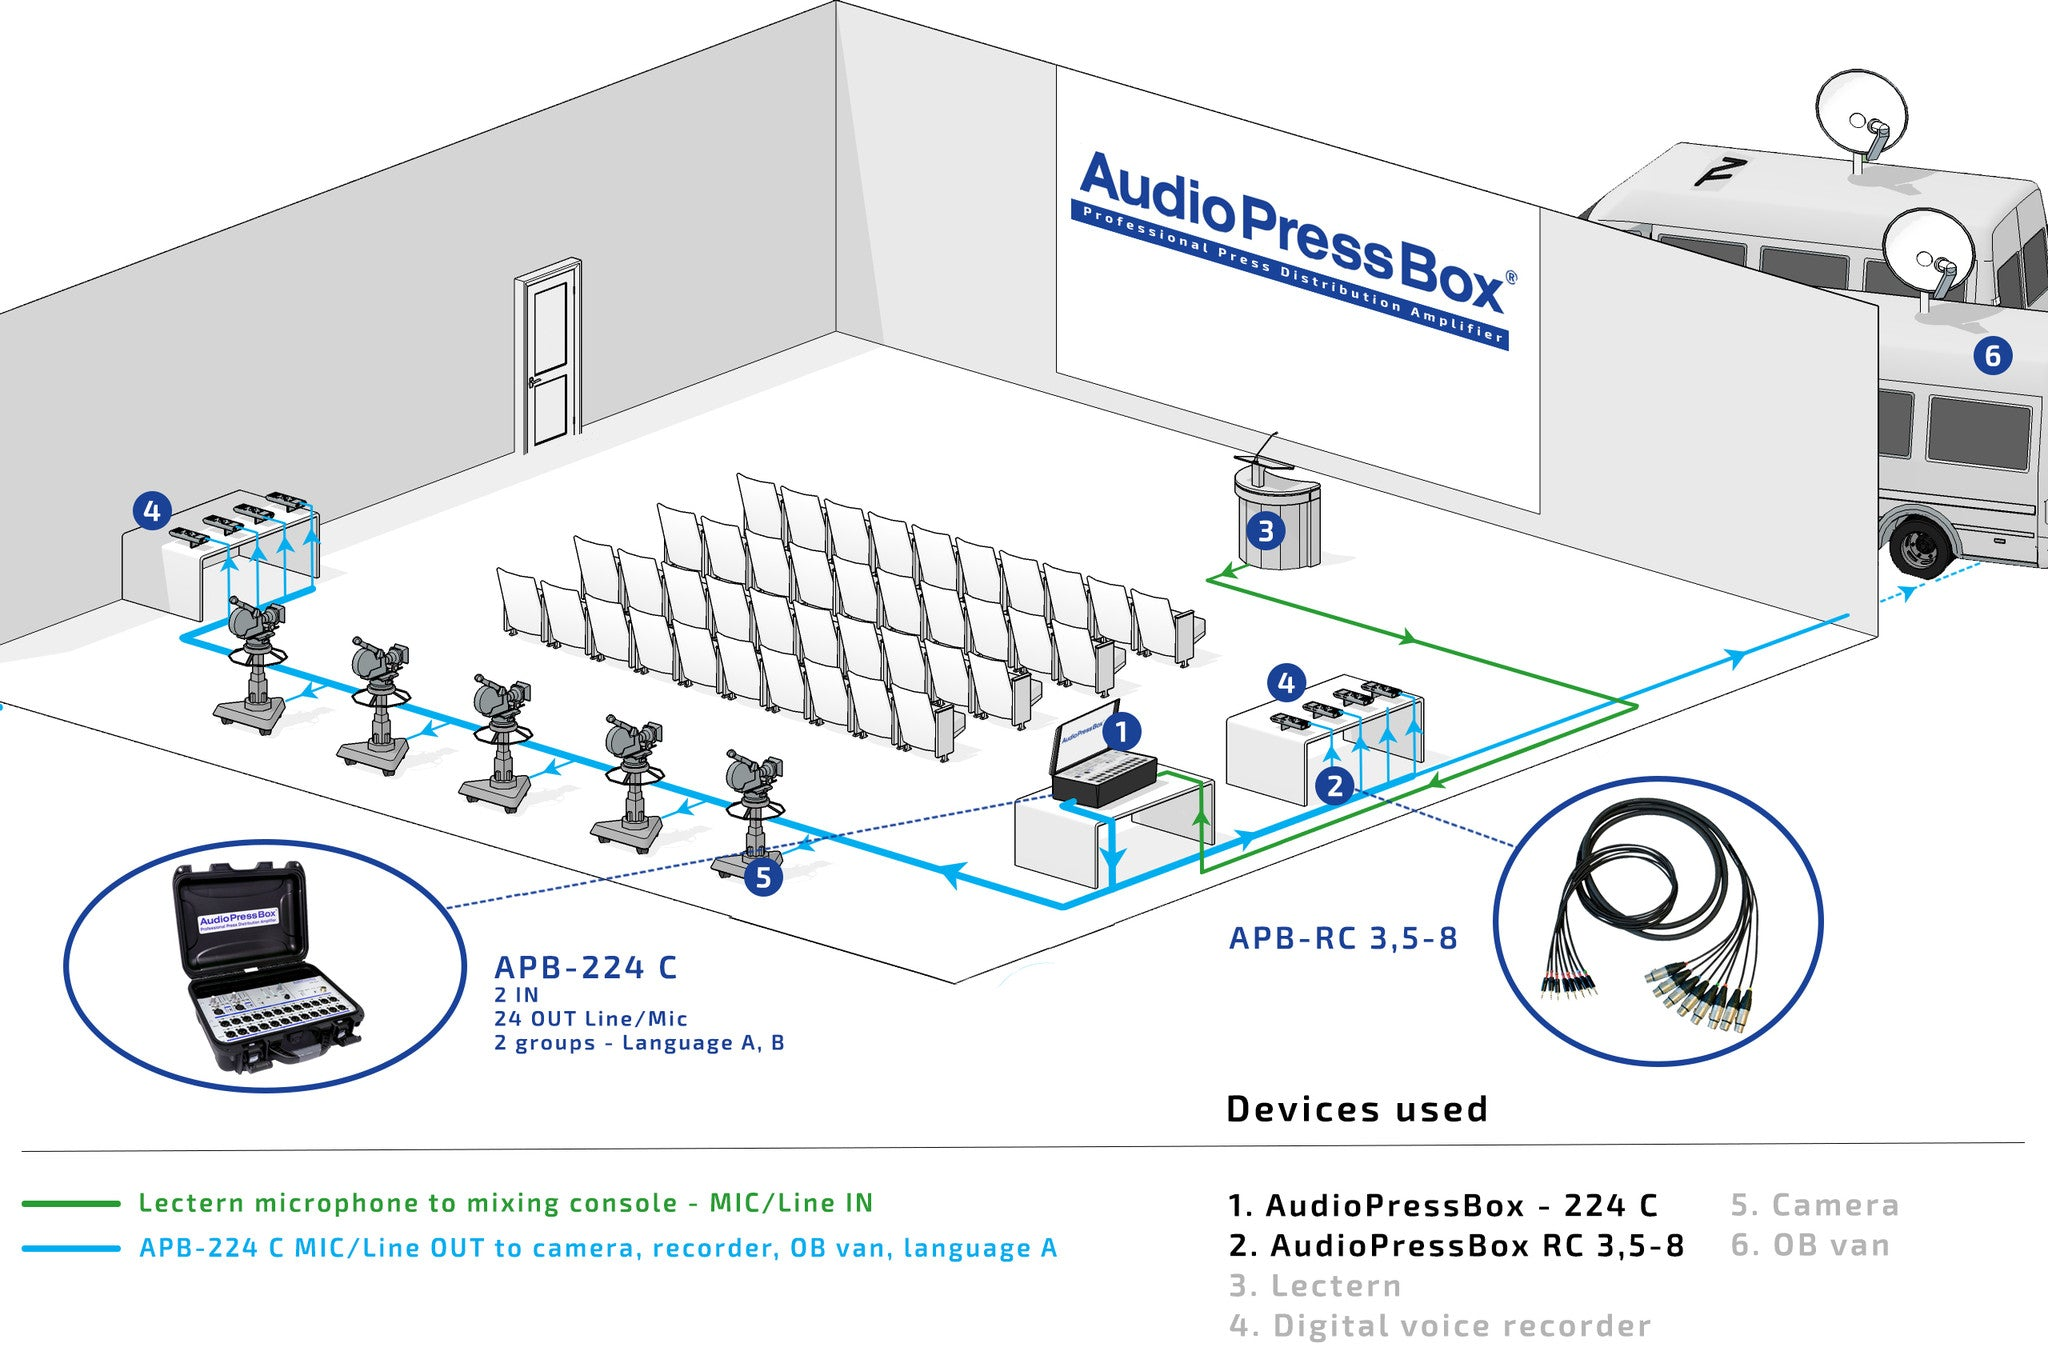 AudioPressBox, Mult Box, PressBox, Mult Box, Press Patch Box, Pressesplitter, APB-224 C